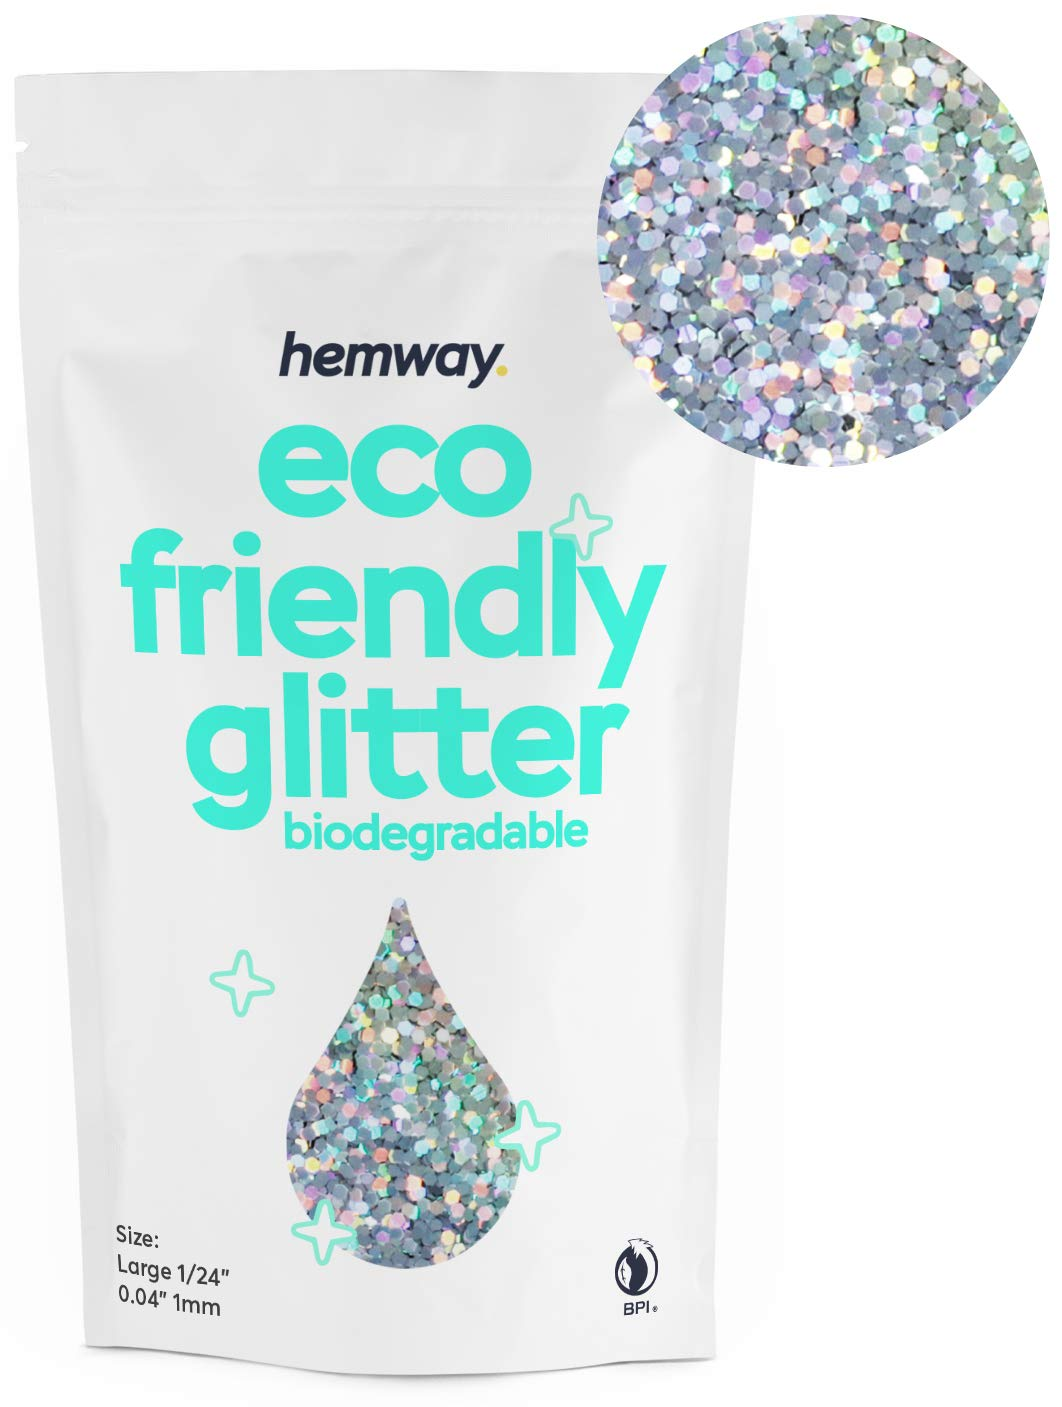 """Hemway Eco Friendly Biodegradable Glitter 100g / 3.5oz Bio Cosmetic Safe Sparkle Vegan for Face, Eyeshadow, Body, Hair, Nail and Festival Makeup, Craft - 1/24"""" 0.04"""" 1mm - Silver Holographic"""